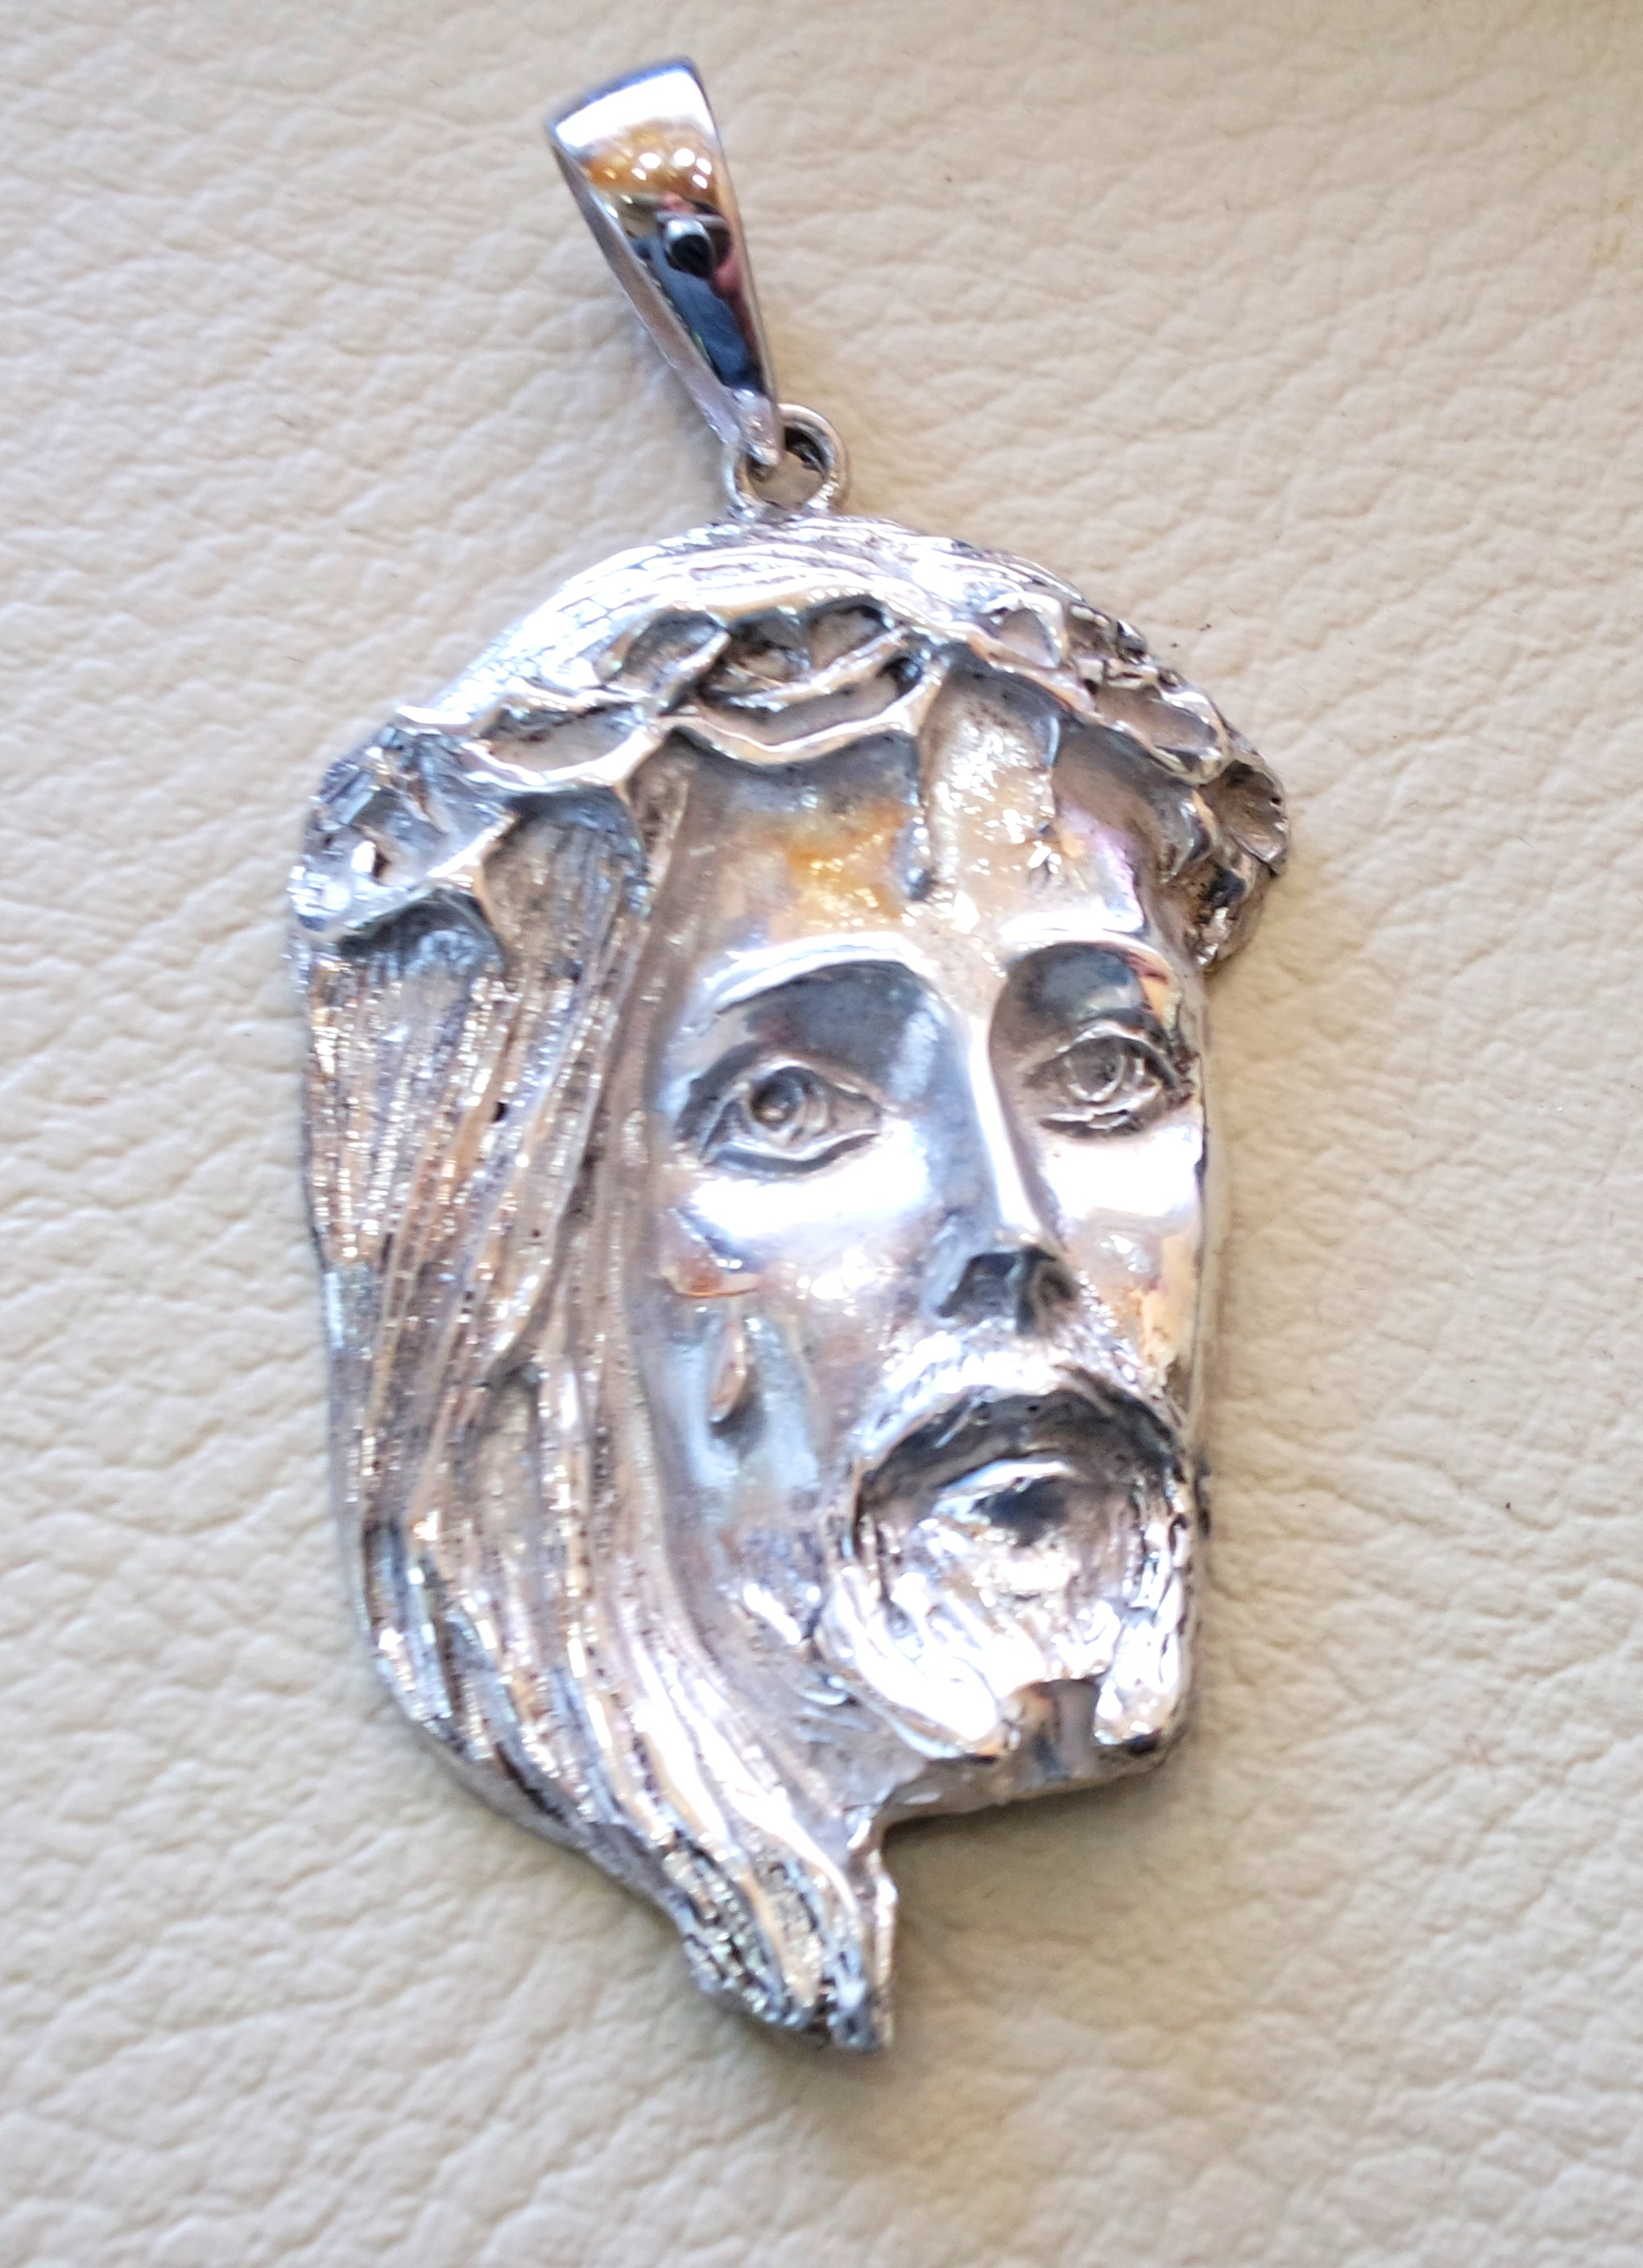 Jesus Christ face head huge pendant and chain sterling silver 925 middle eastern jewelry christianity vintage handmade heavy fast shipping